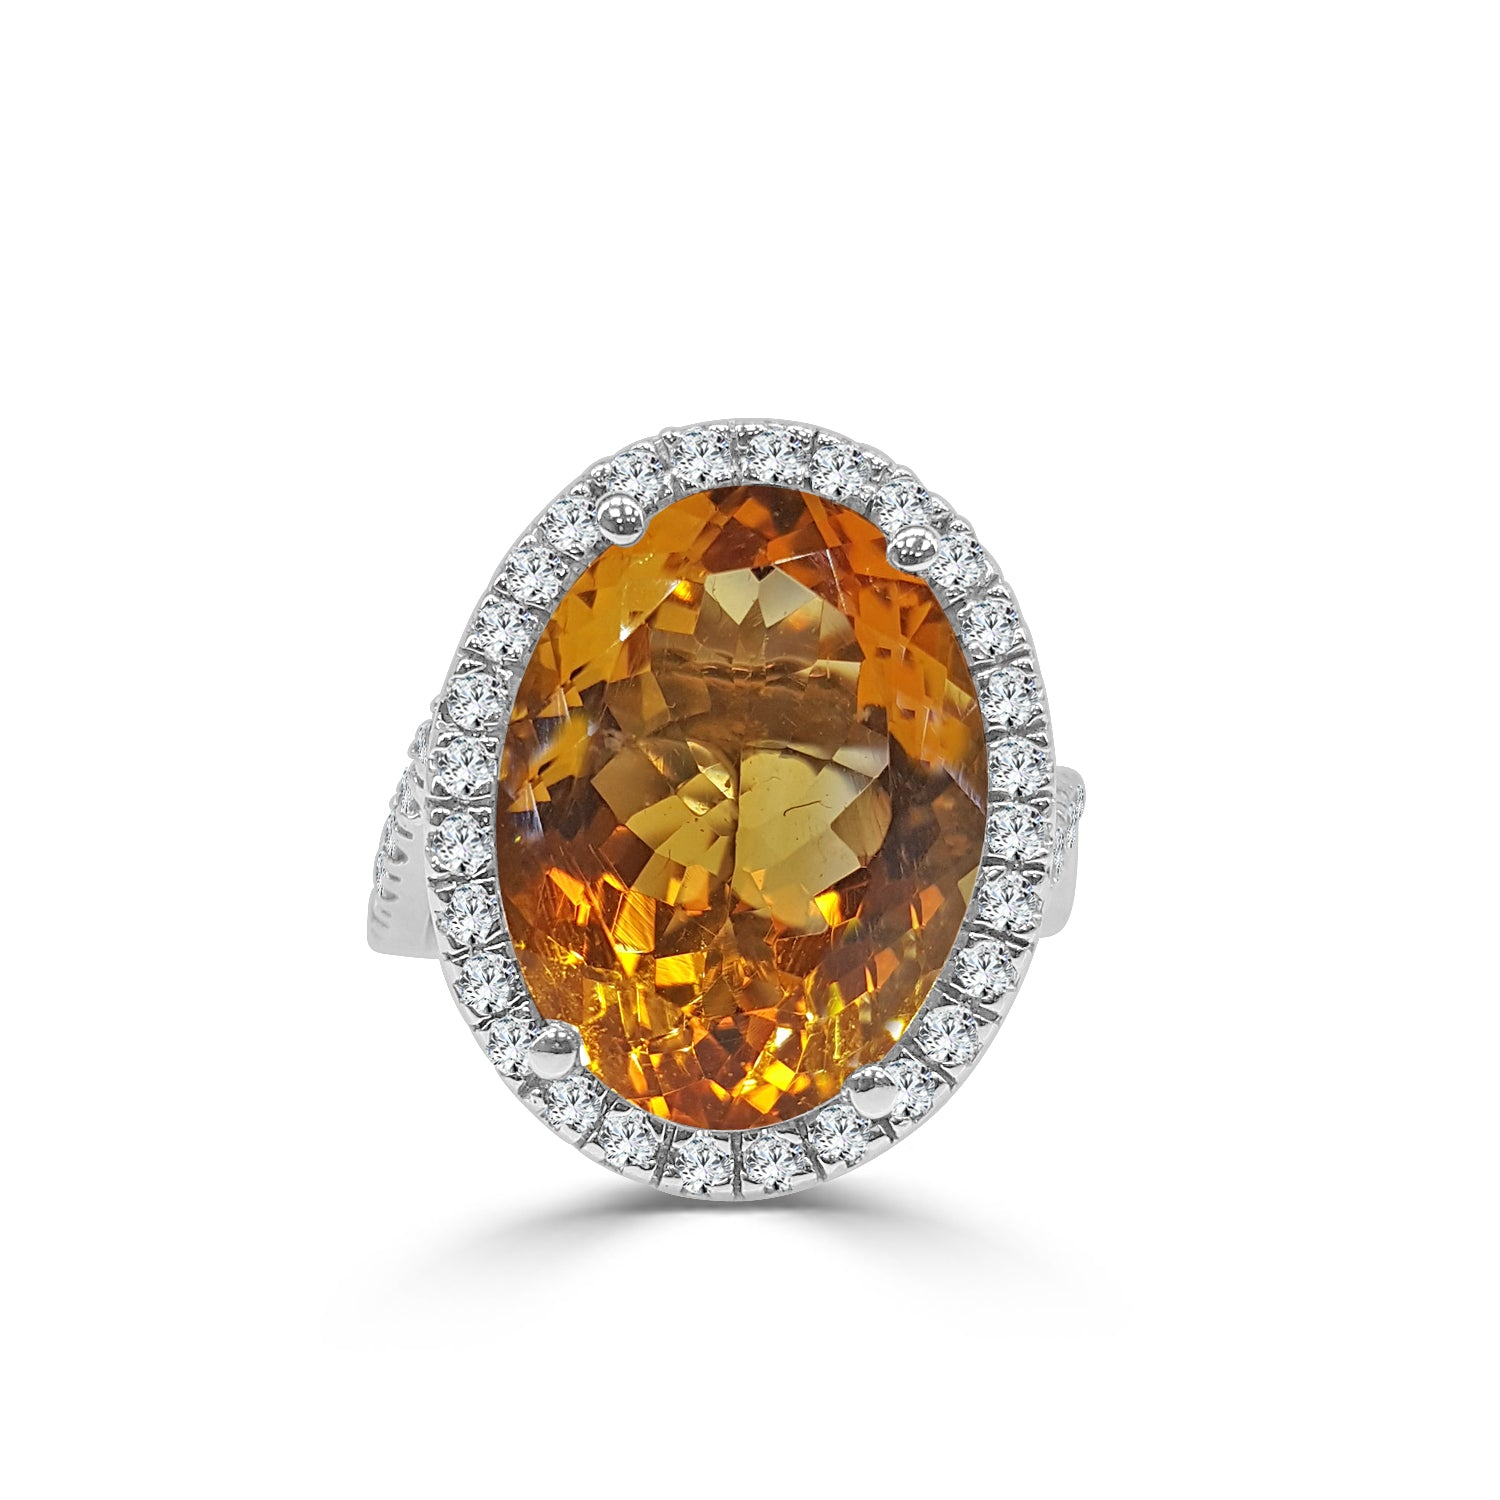 Oval 9.50 Carat Citrine With Fancy Swirl Halo